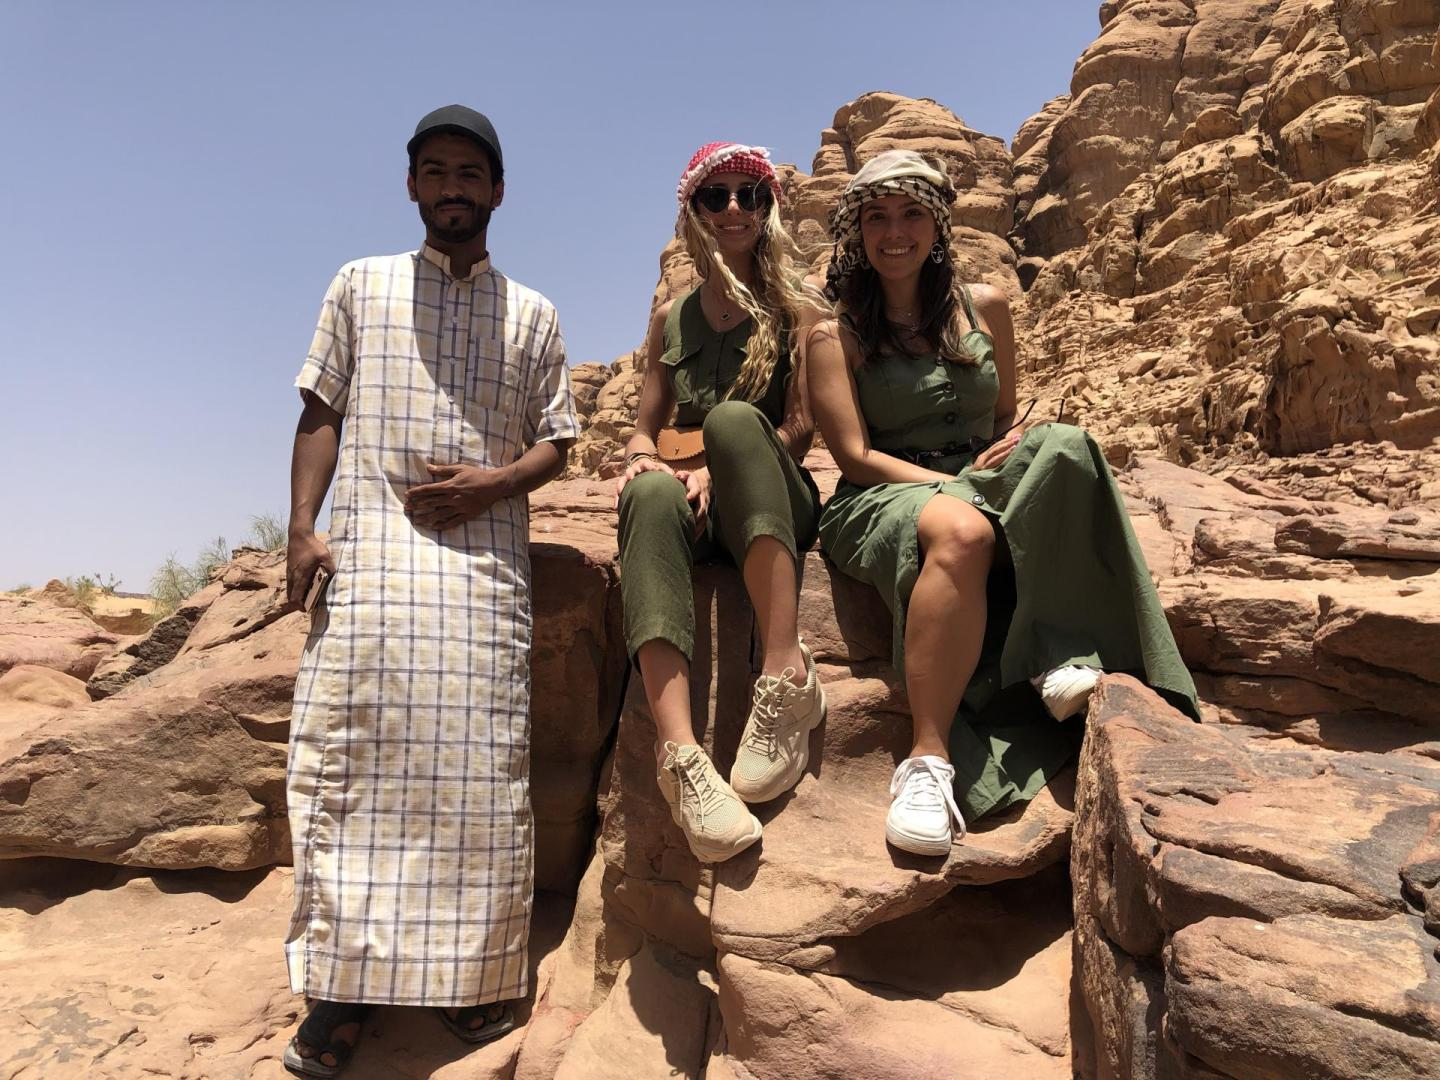 Two women and a Bedouin man in the desert.